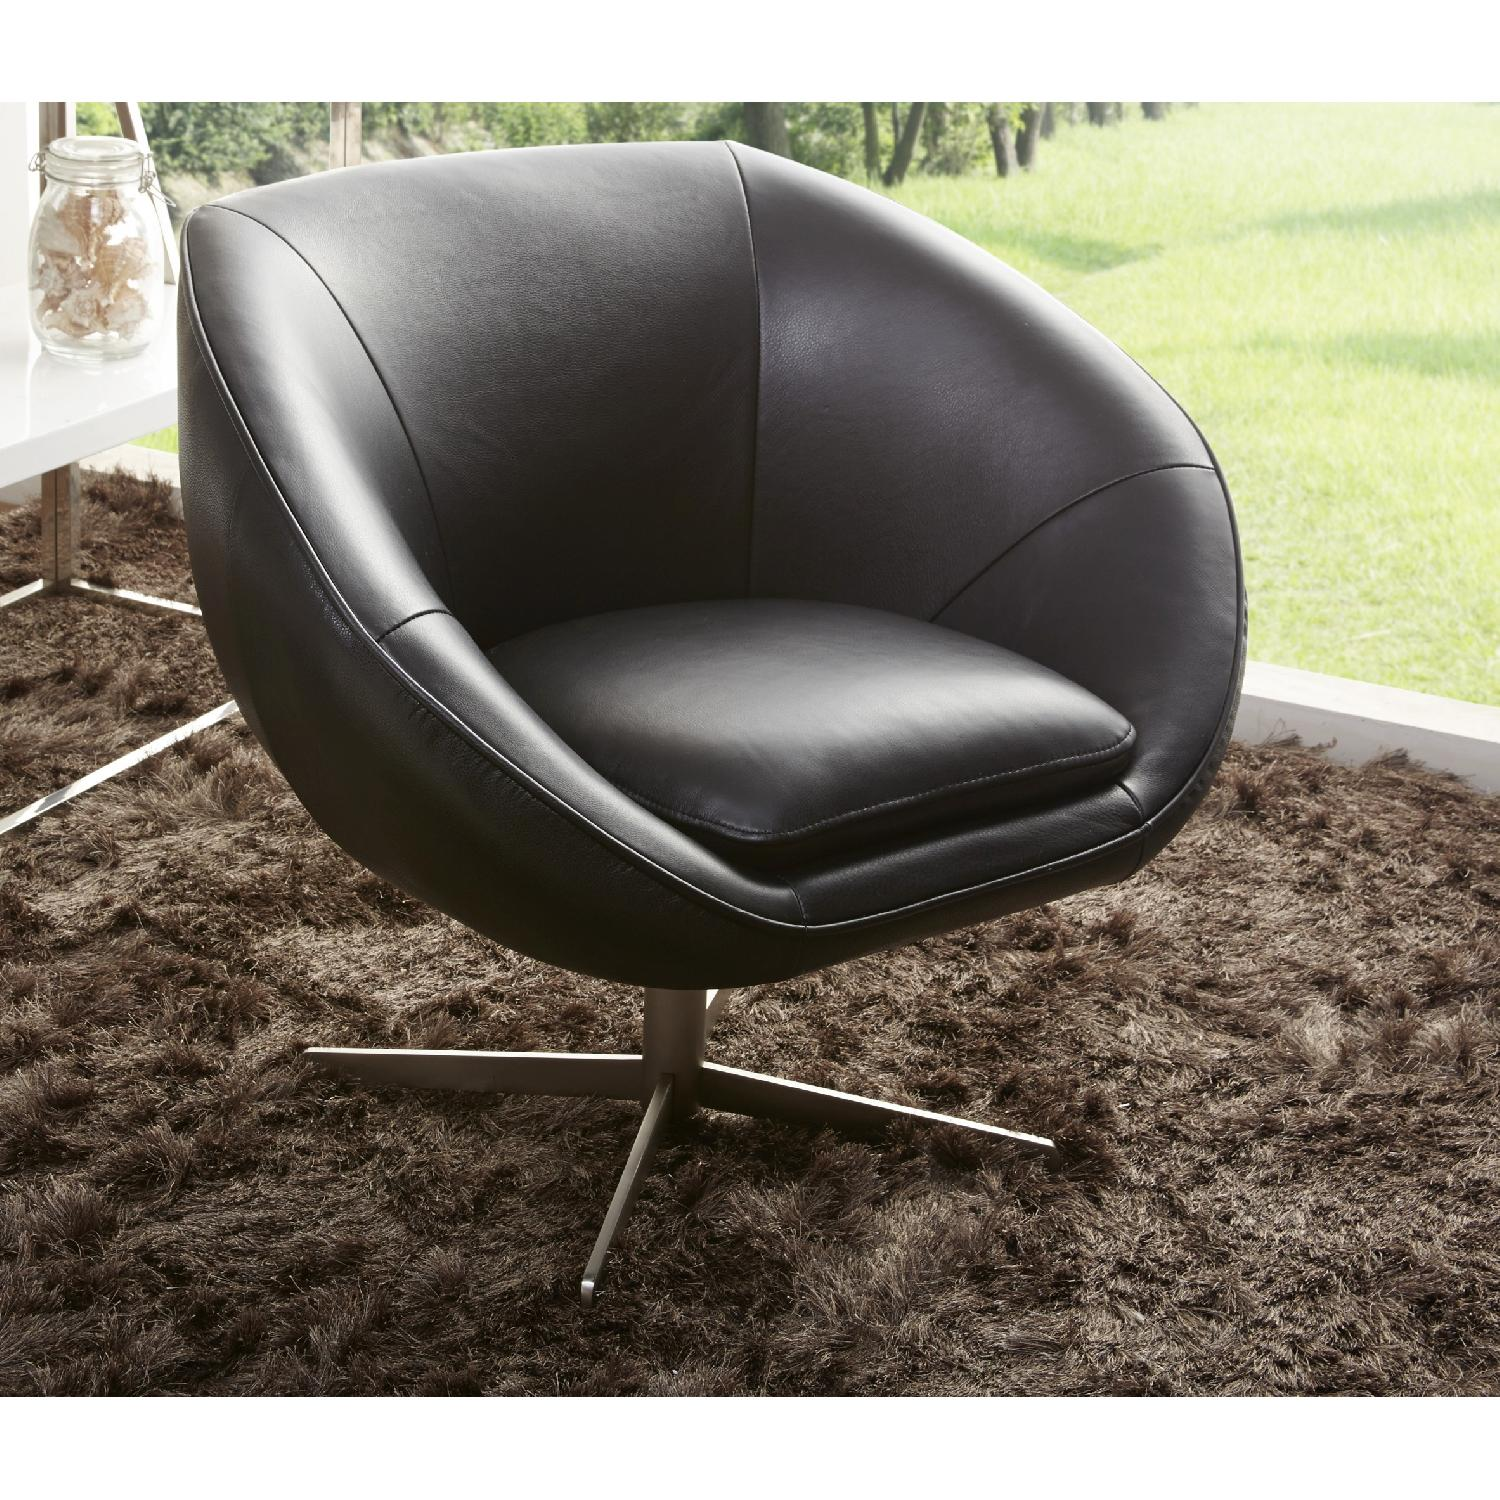 Modern Swivel Accent Chair in Black Premium Leather w/ Matching Faux Leather & Chrome Base - image-1